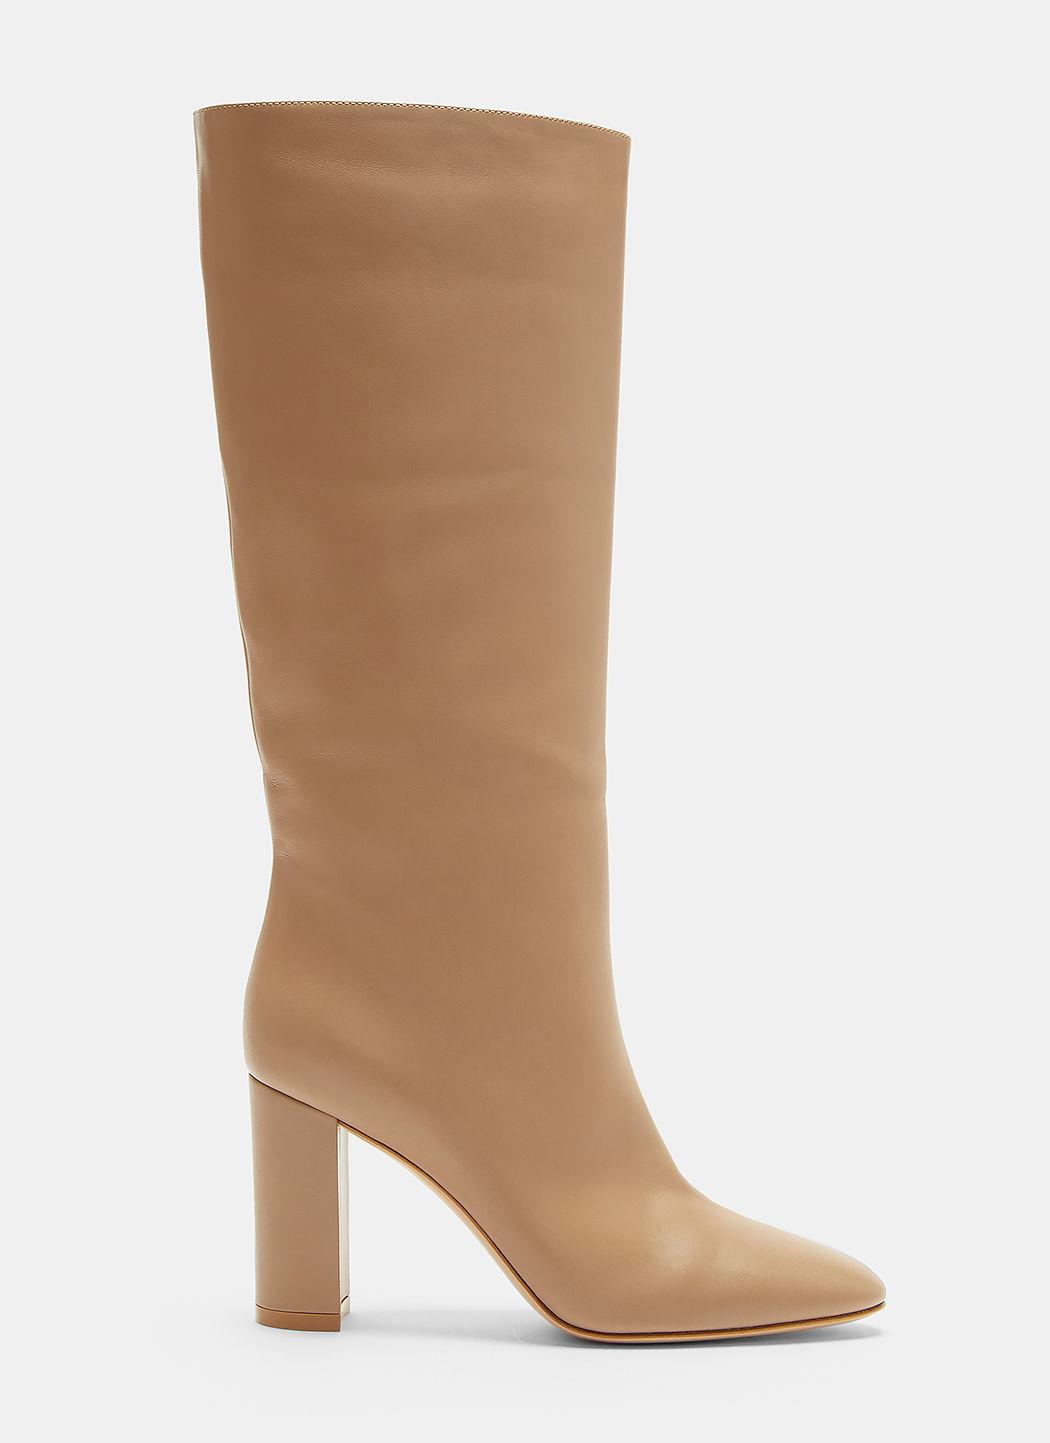 Gianvito Rossi Laura 85 Calf Length Boots In Beige